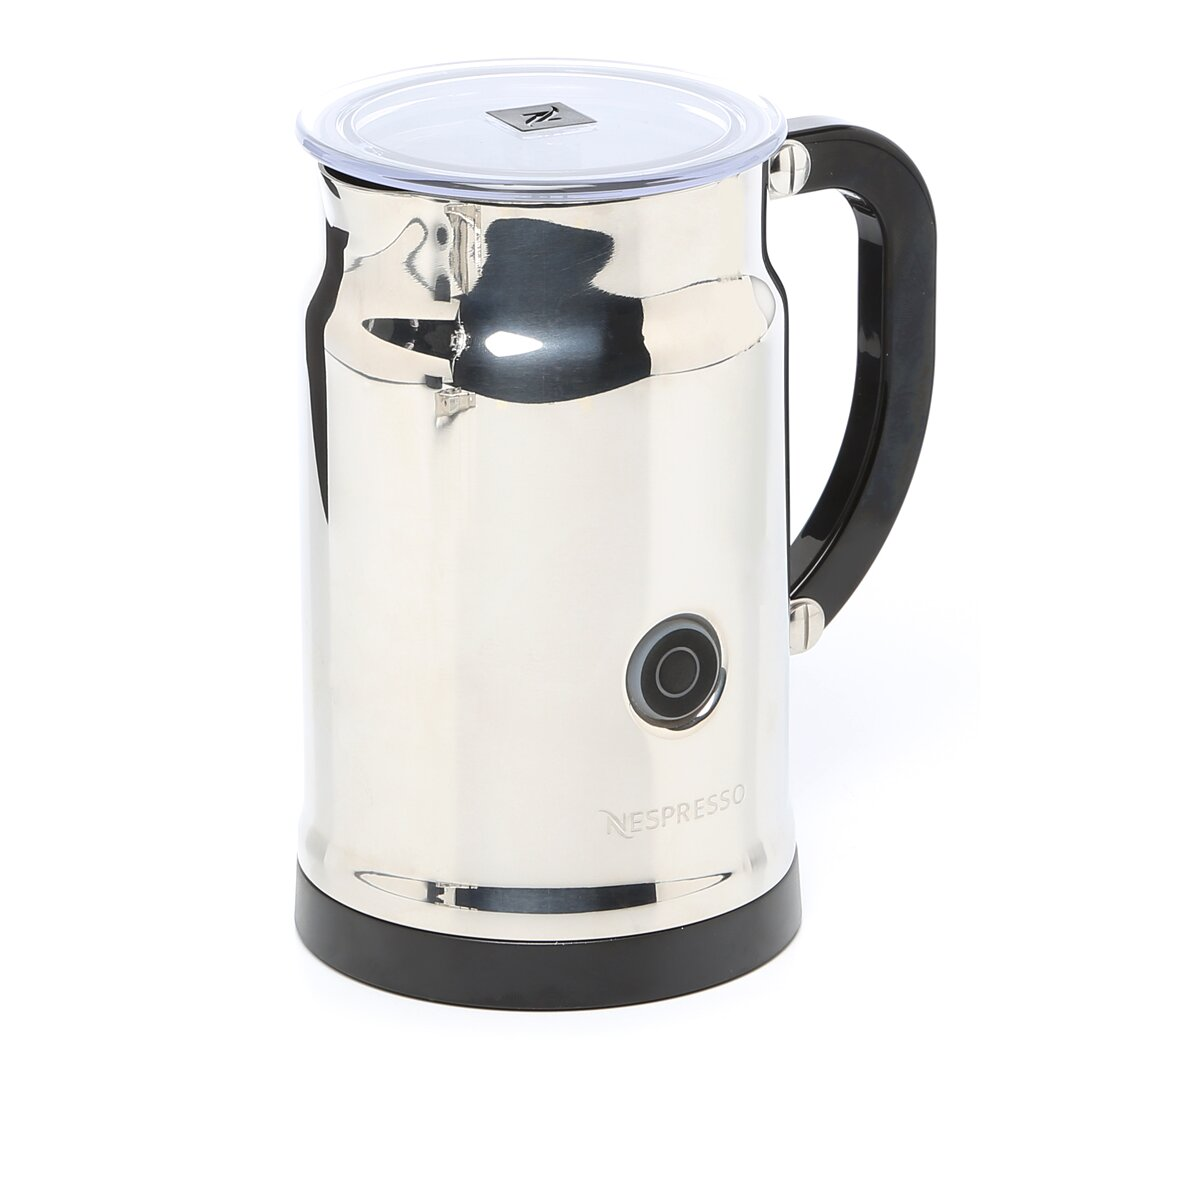 nespresso pixie espresso maker with aerocinno milk frother reviews wayfair. Black Bedroom Furniture Sets. Home Design Ideas